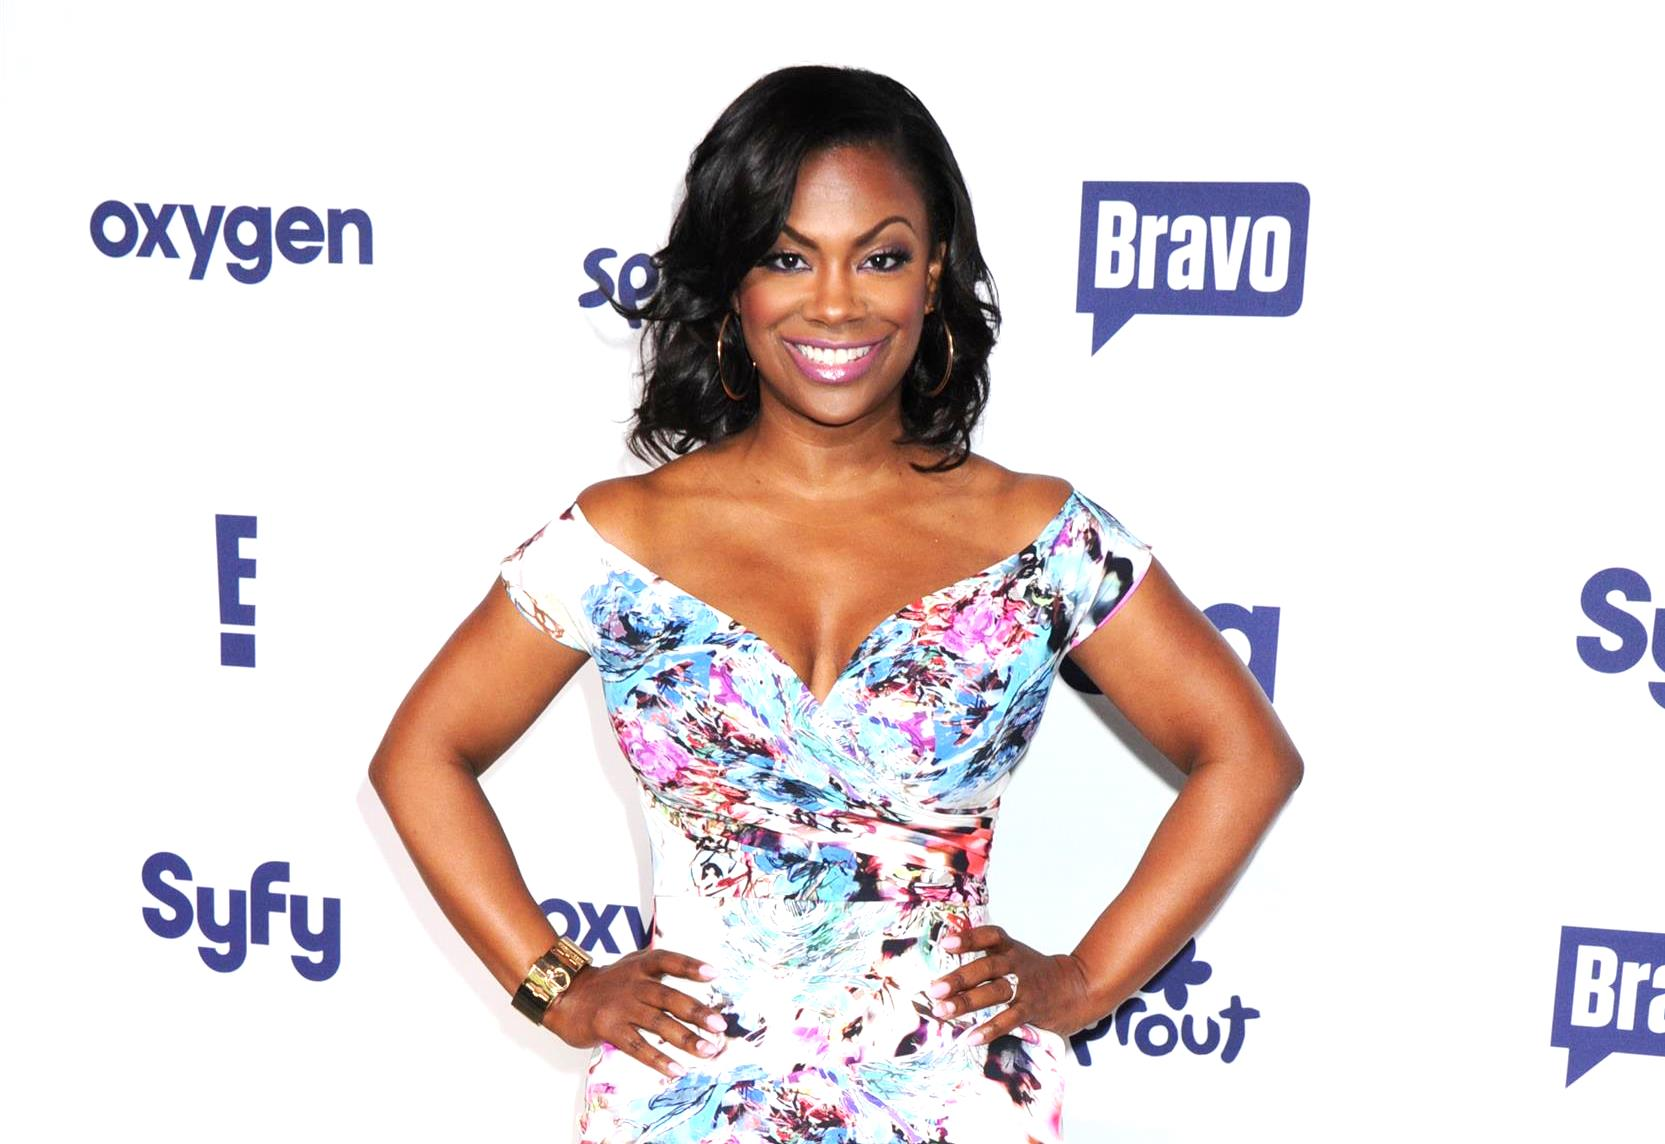 Kandi Burruss Supports A Young Designer And Fans Appreciate Her Kindness